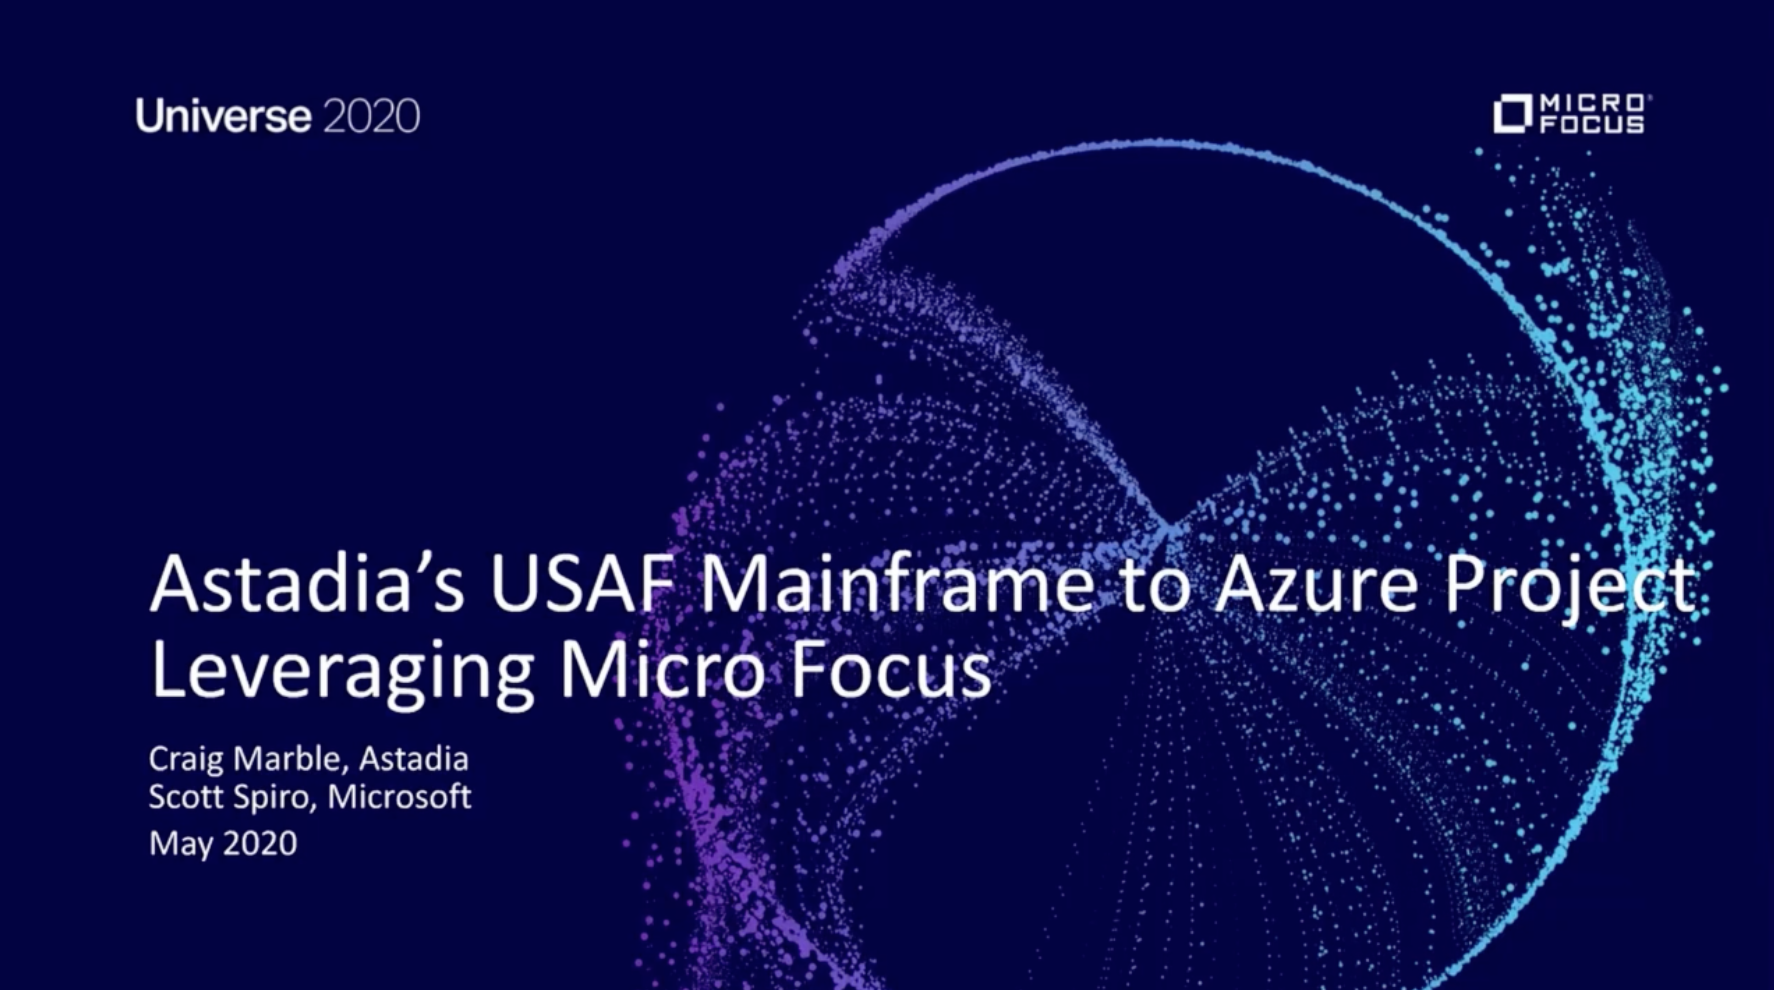 USAF Mainframe to Azure Project Leveraging Micro Focus